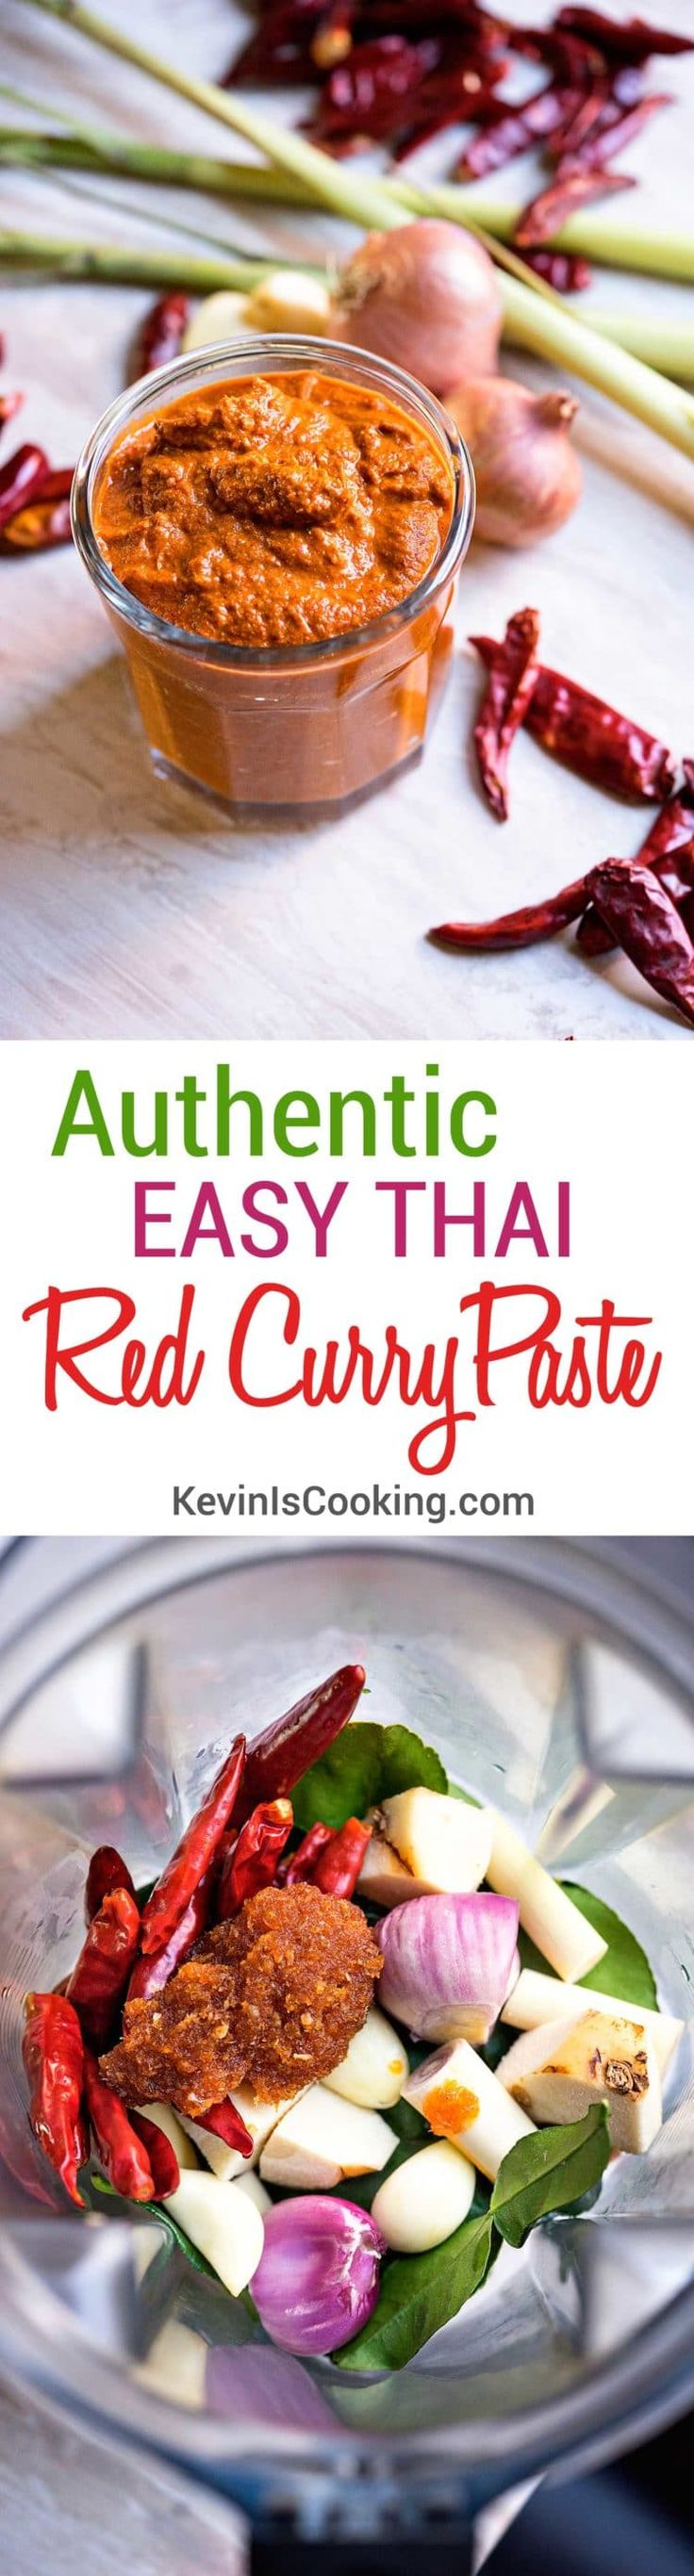 If authentic Thai is what you're looking for than you need this Easy Thai Red Curry Paste. With only 7 ingredients and 1 massive amount of POW this delivers! via @keviniscooking